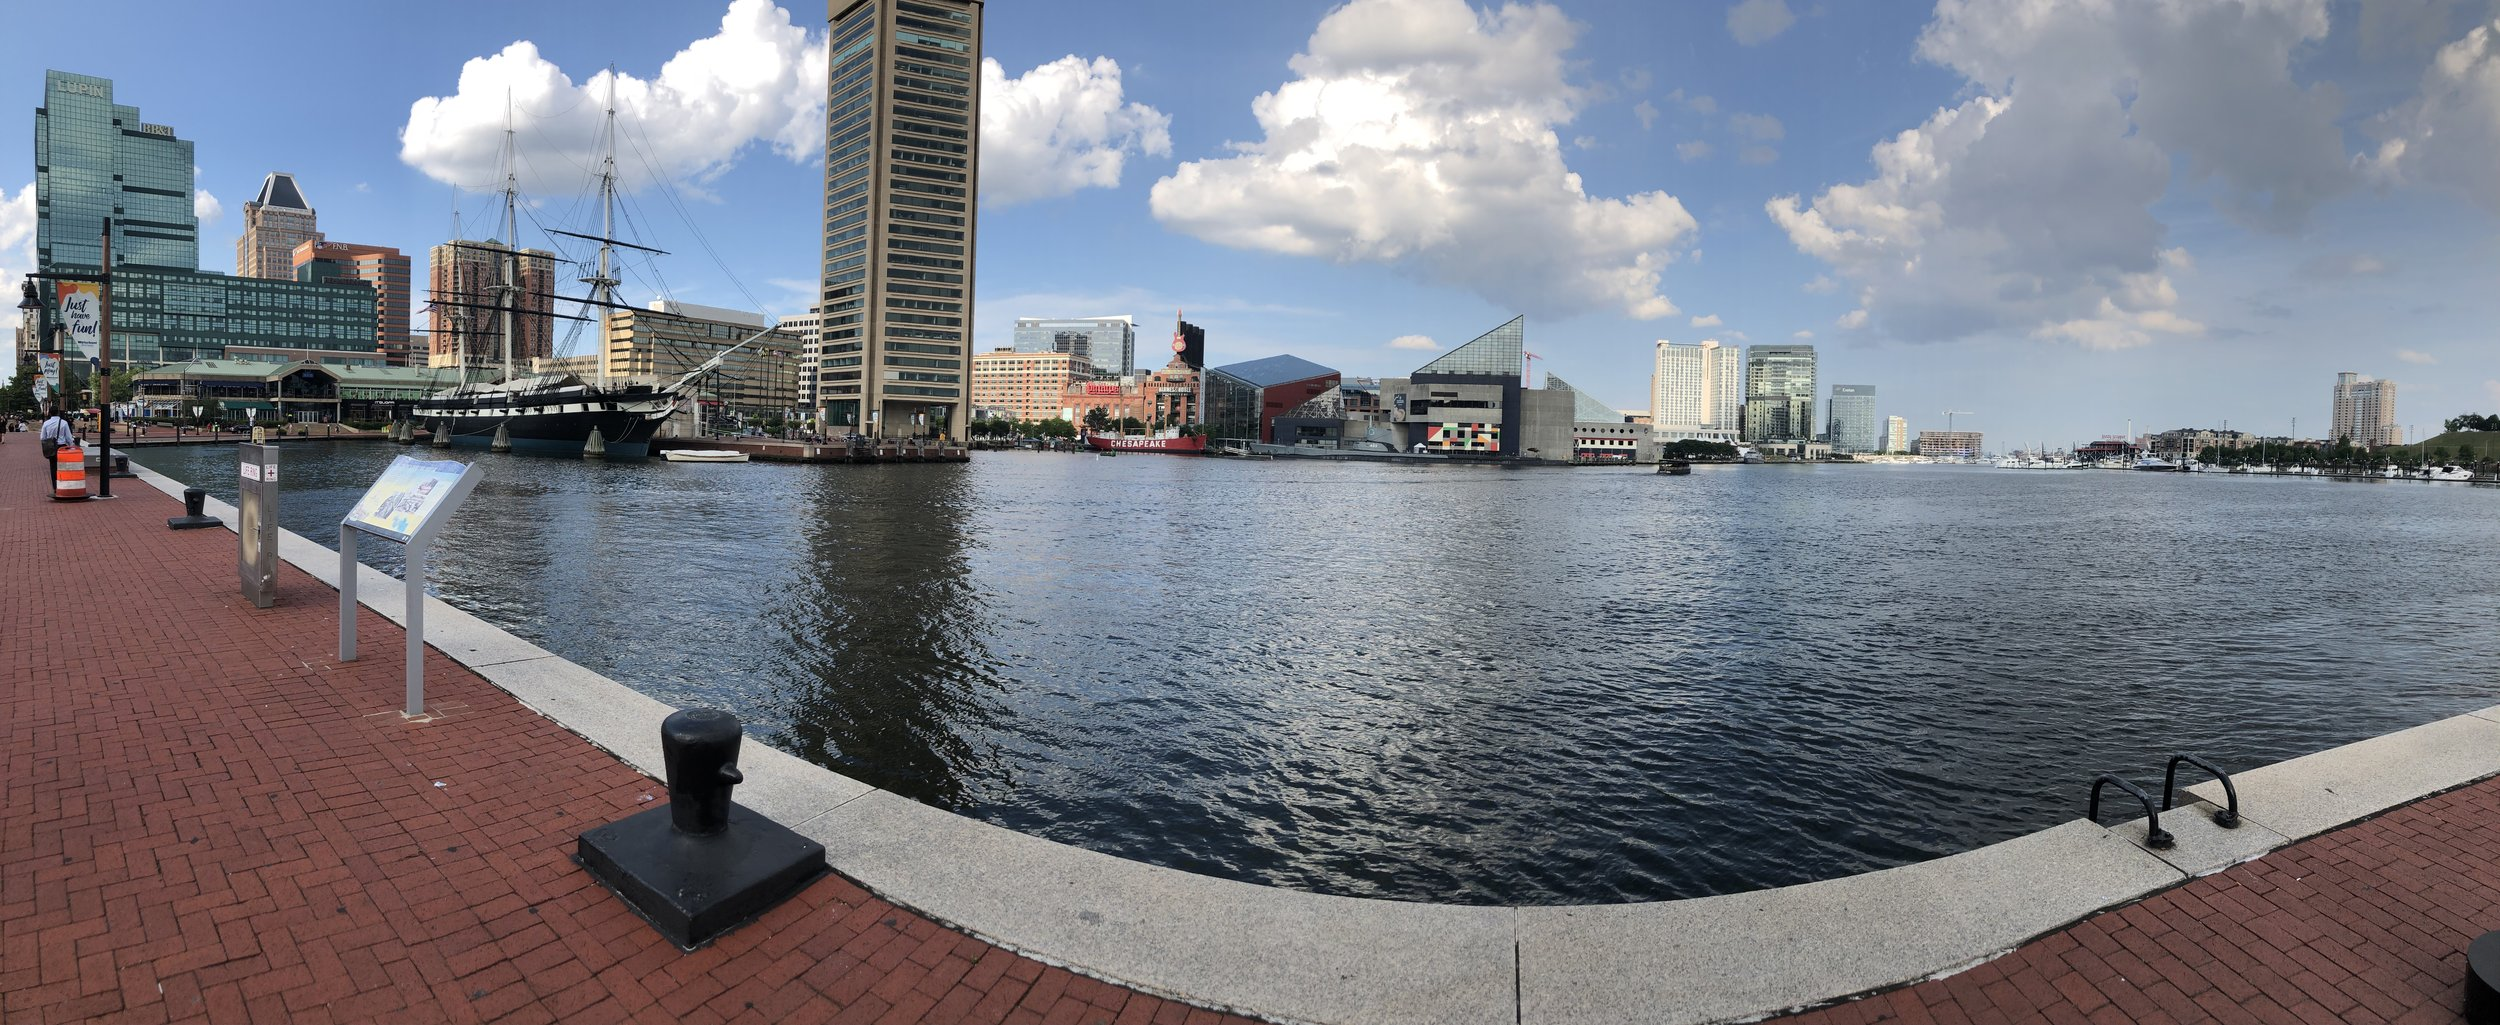 Baltimore Inner Harbor. Day 1 of the course is located at the Hampton Inn, 550 Washington Boulevard, a few blocks from the harbor.